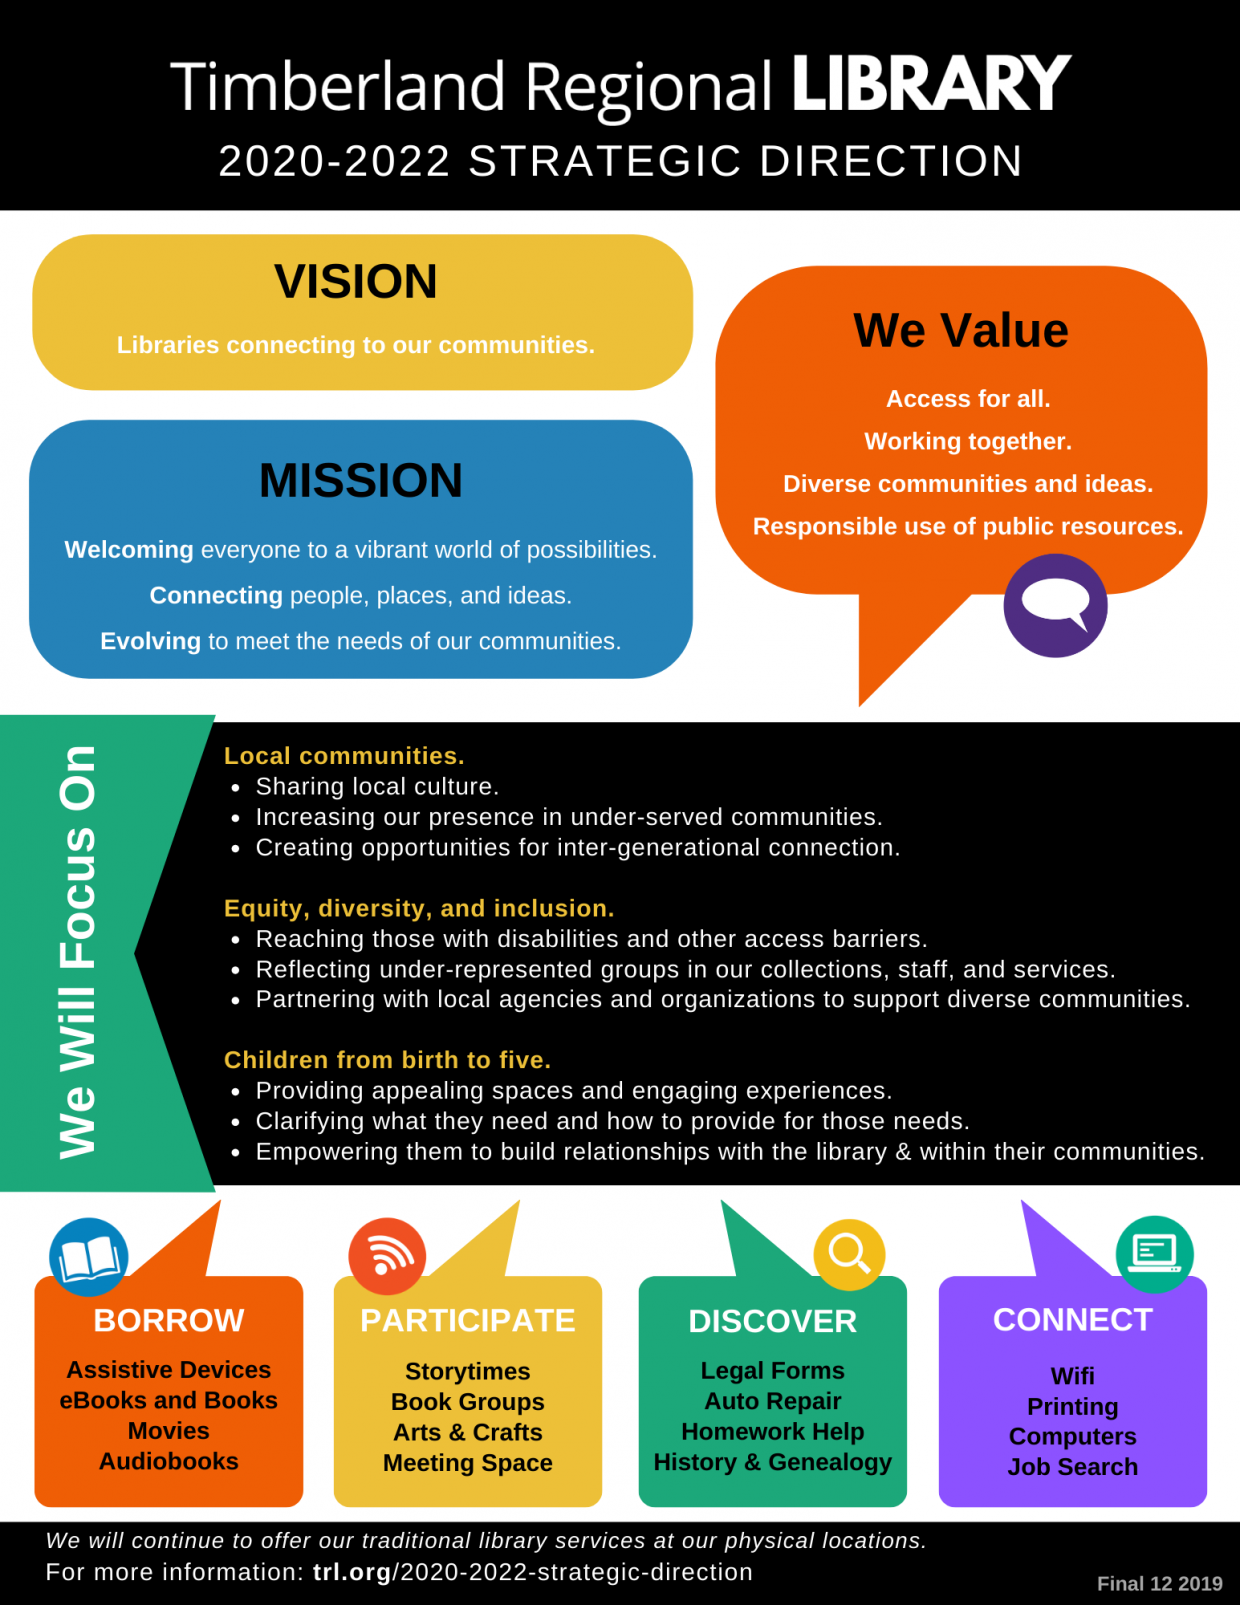 Image of the Strategic Direction flyer - text on page below image